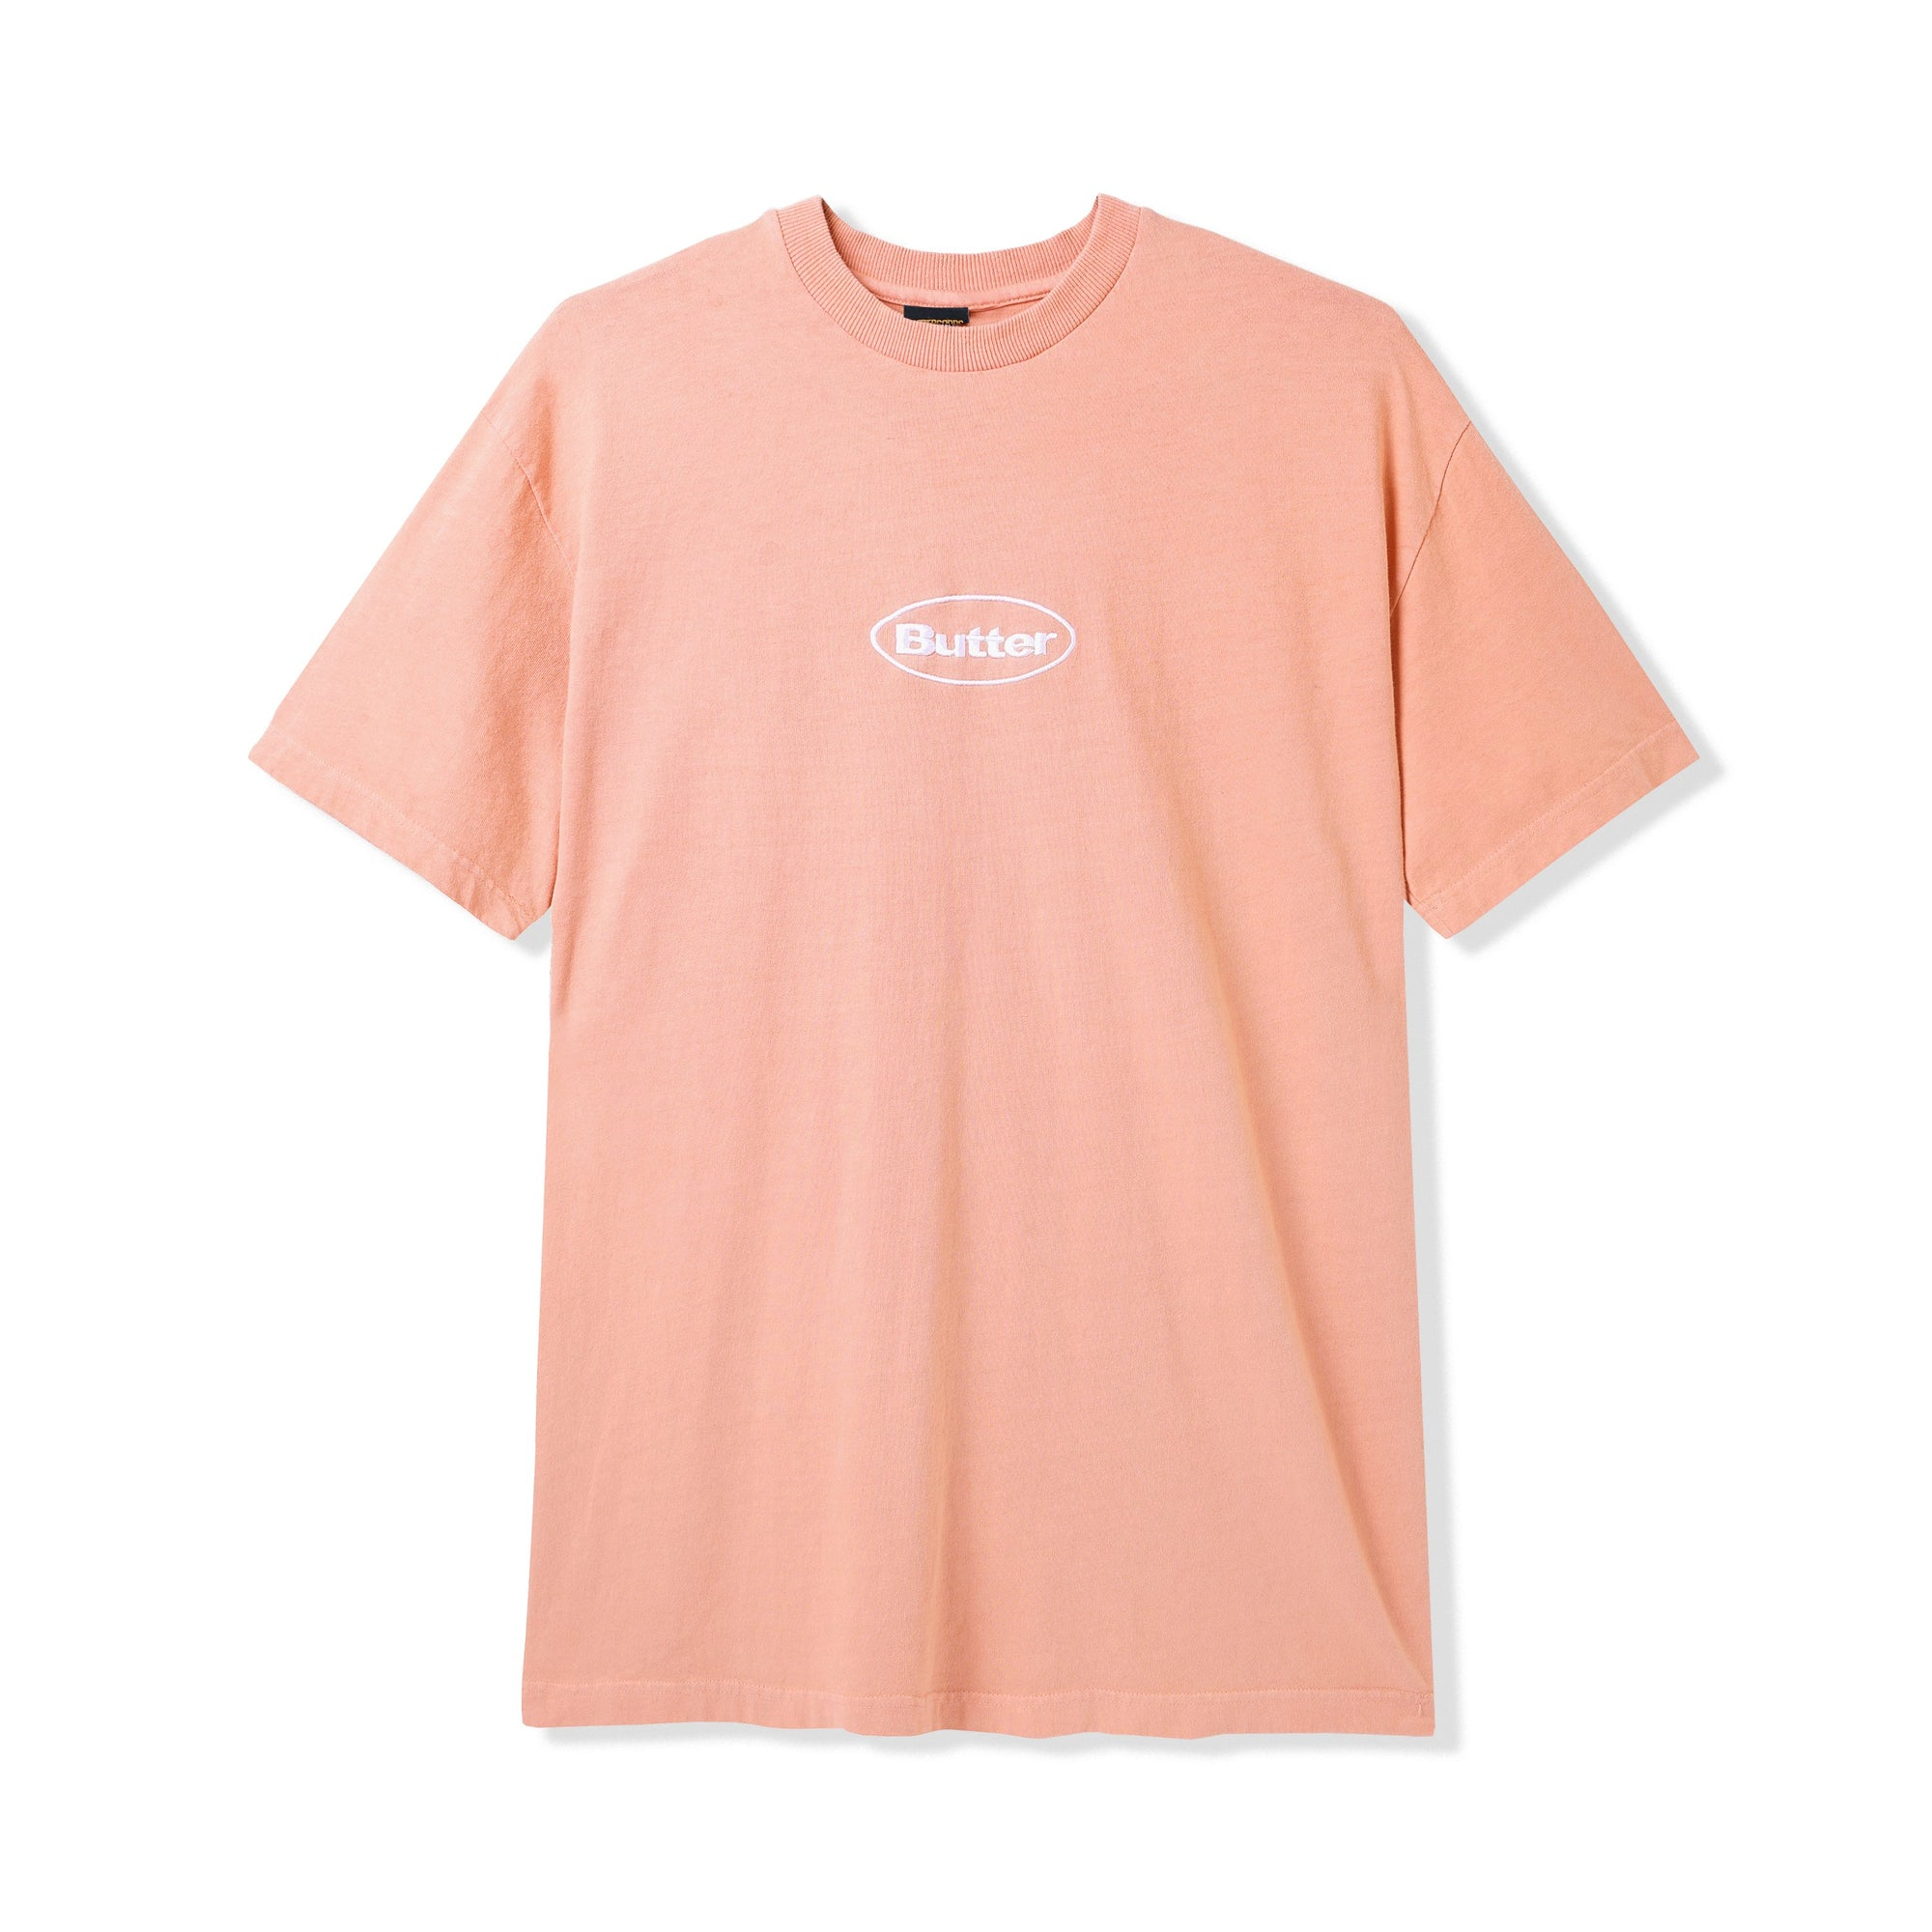 Butter Goods Heavyweight Pigment Dye Tee Product Photo #1